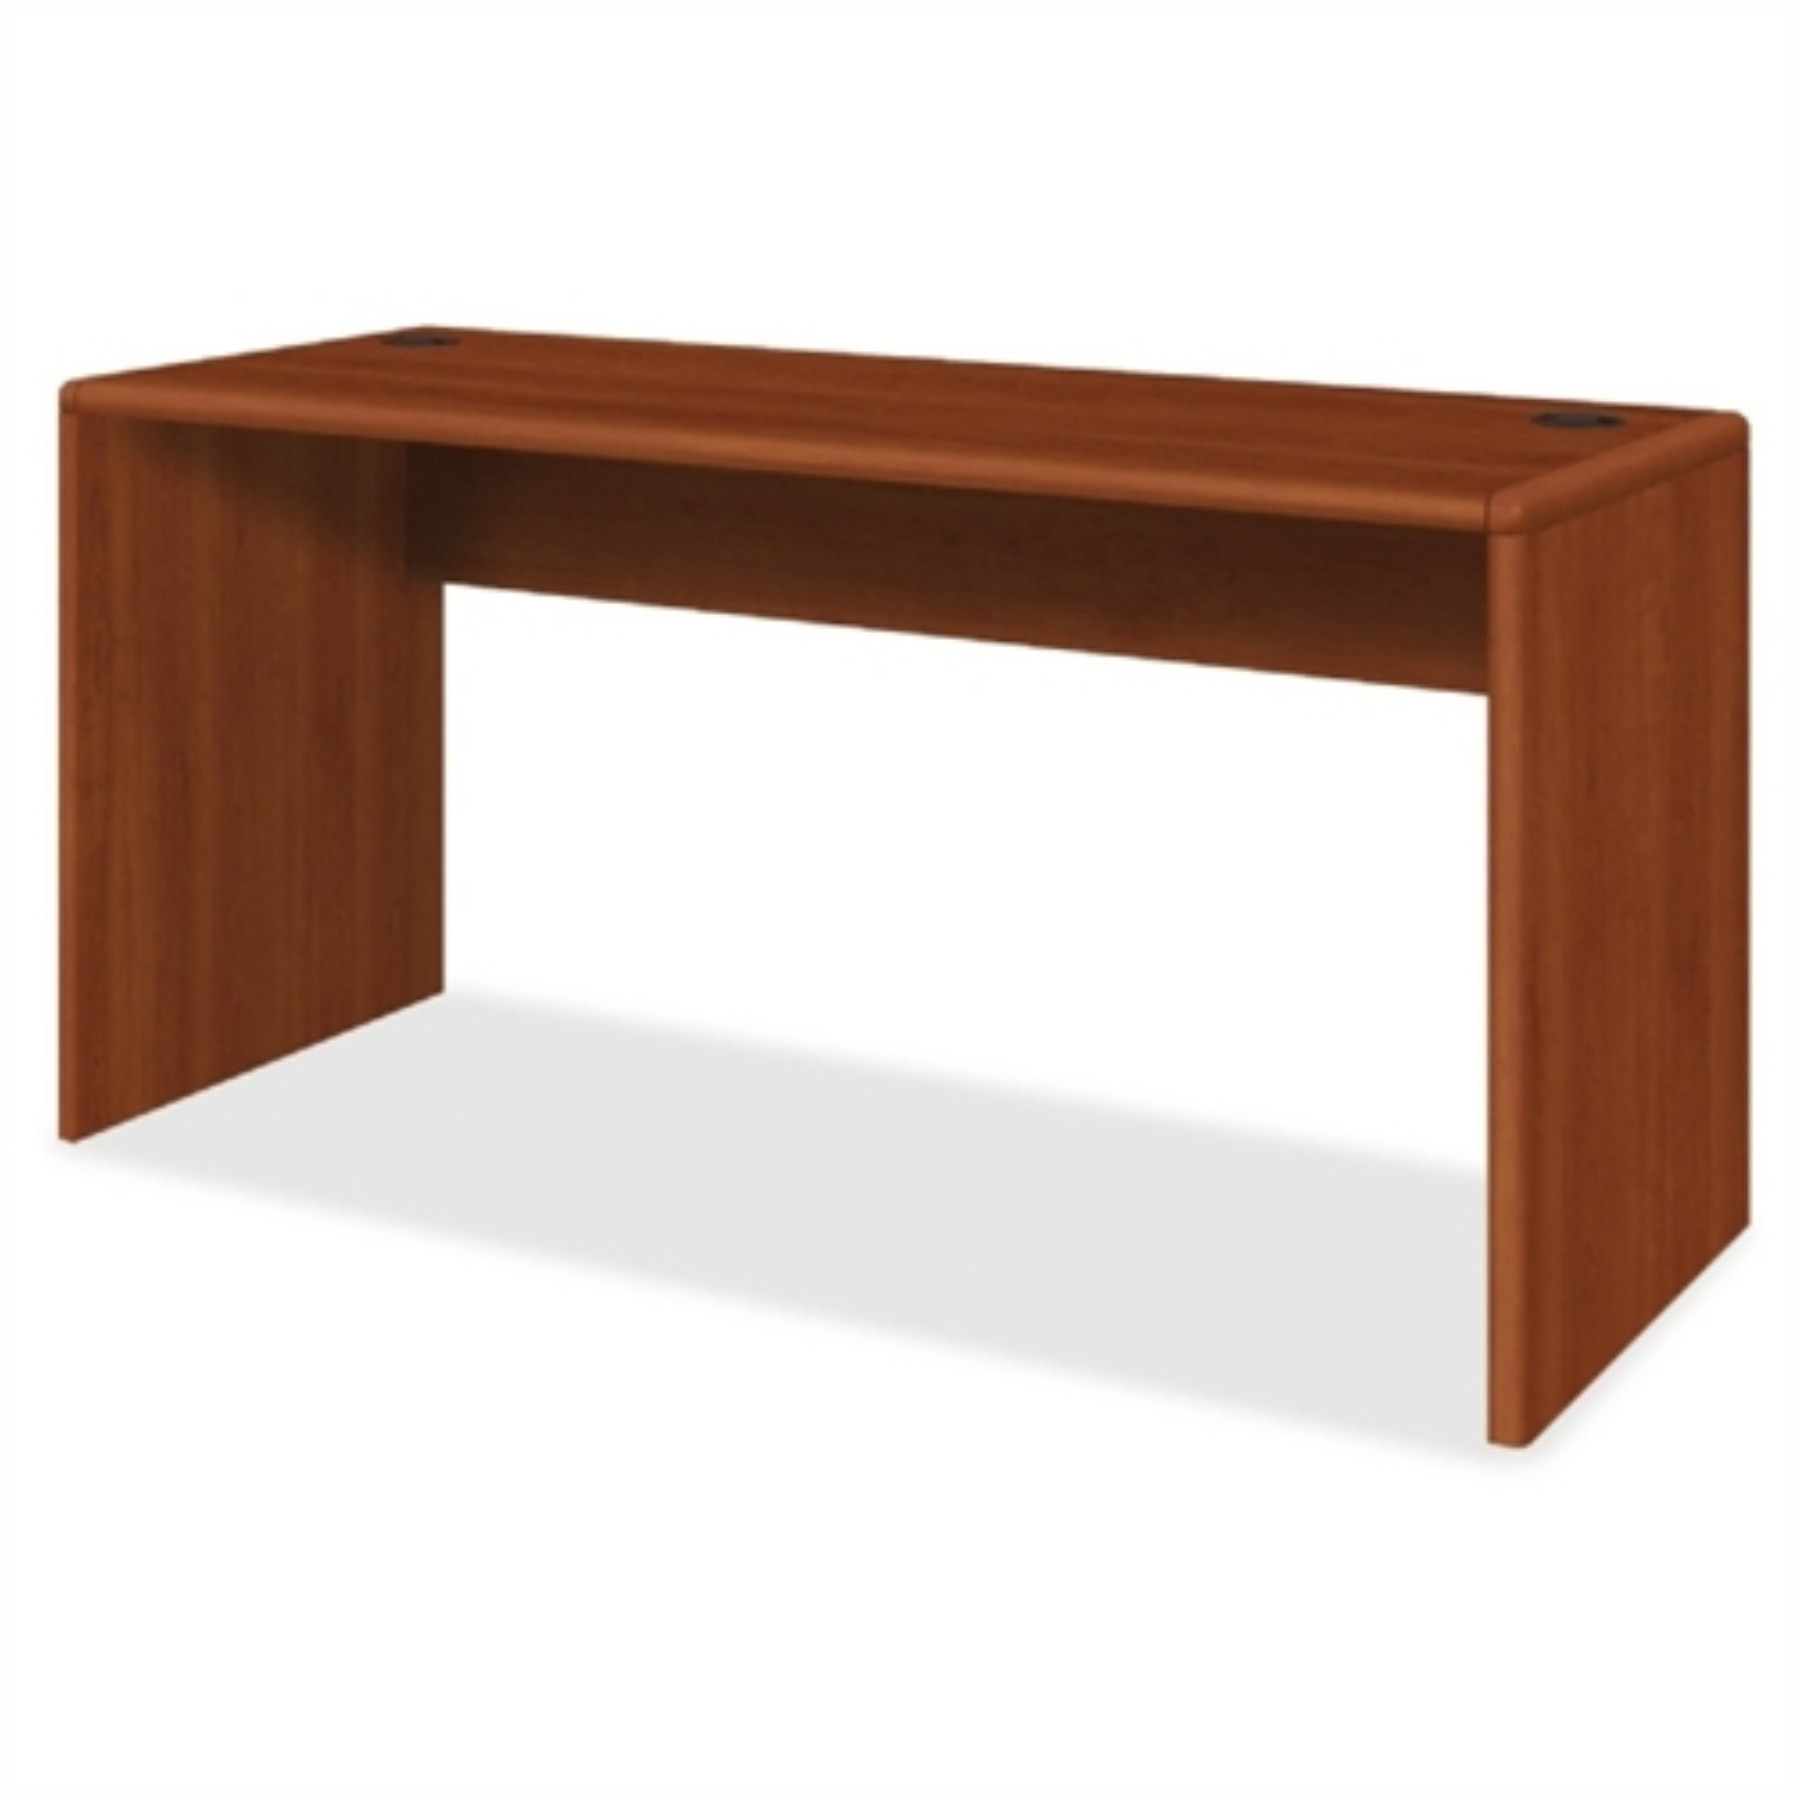 10700 Series Credenza Shell, 60w x 24d x 29 1/2h, Cognac